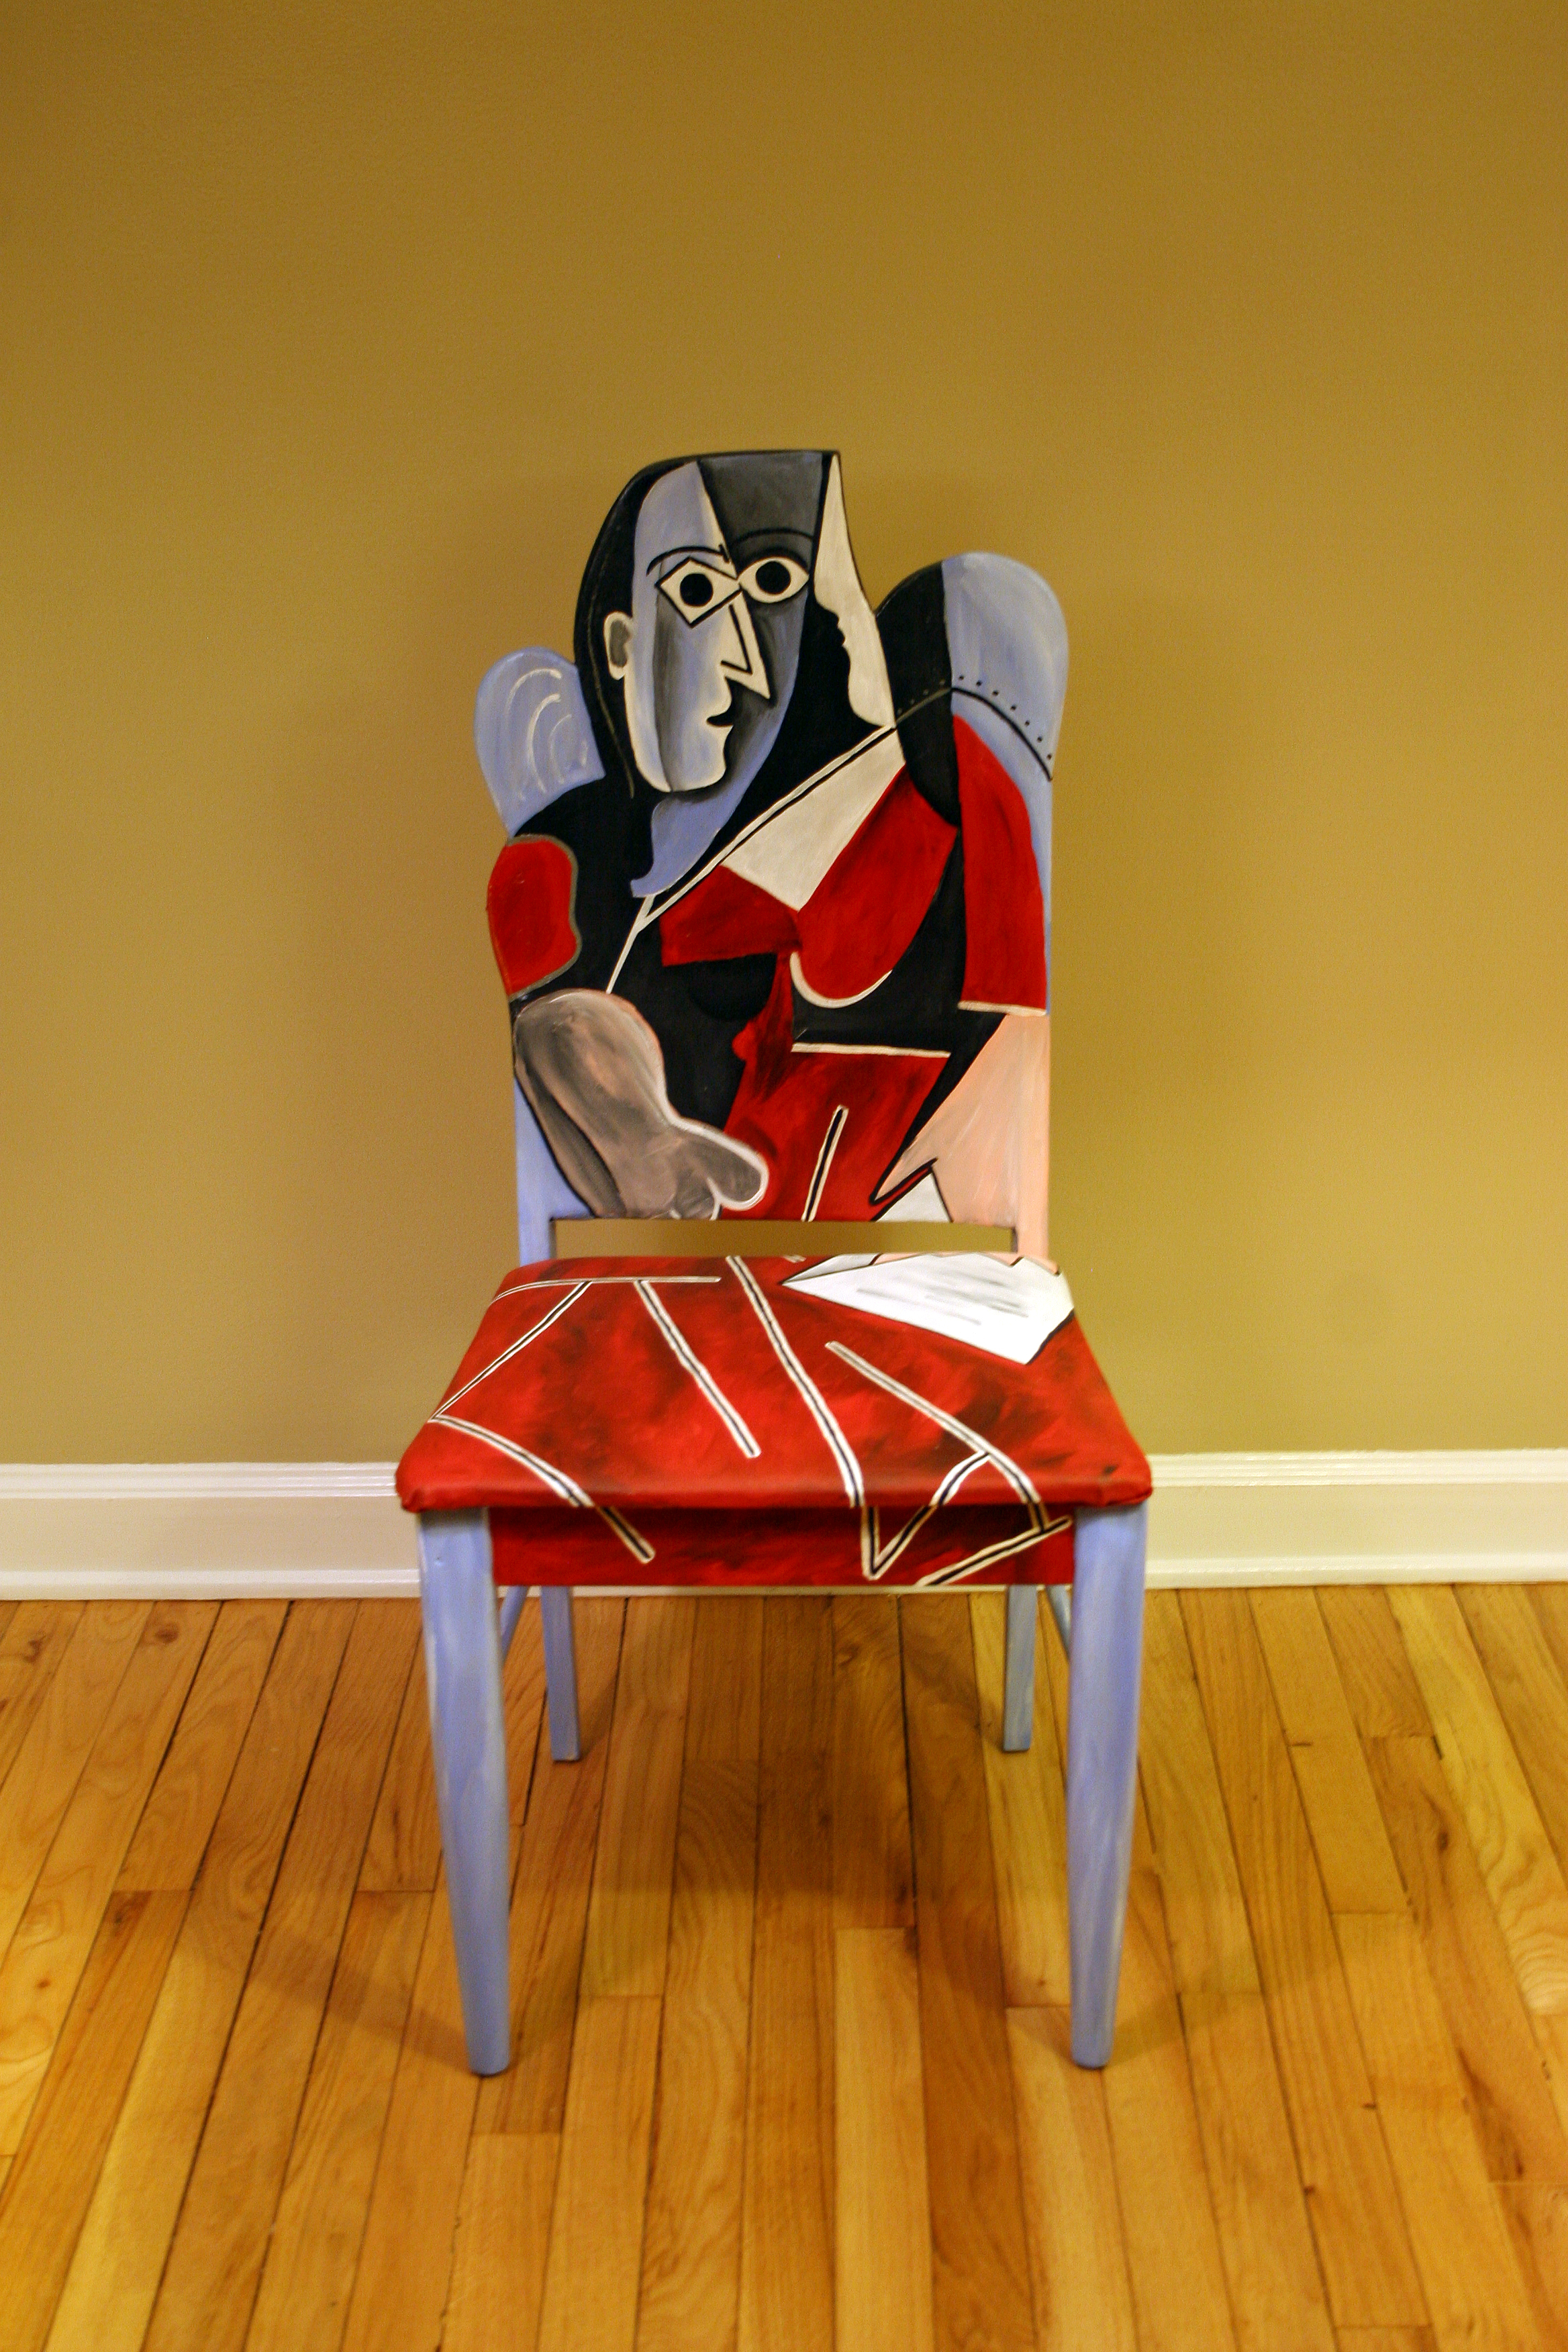 This Upcycled Painted Chair Pays Tribute To Picassou0027s Woman In Red Painting.  The Striking Cubist Piece Of Artwork Is Painted In Acrylic Blends And  Shades Of ...